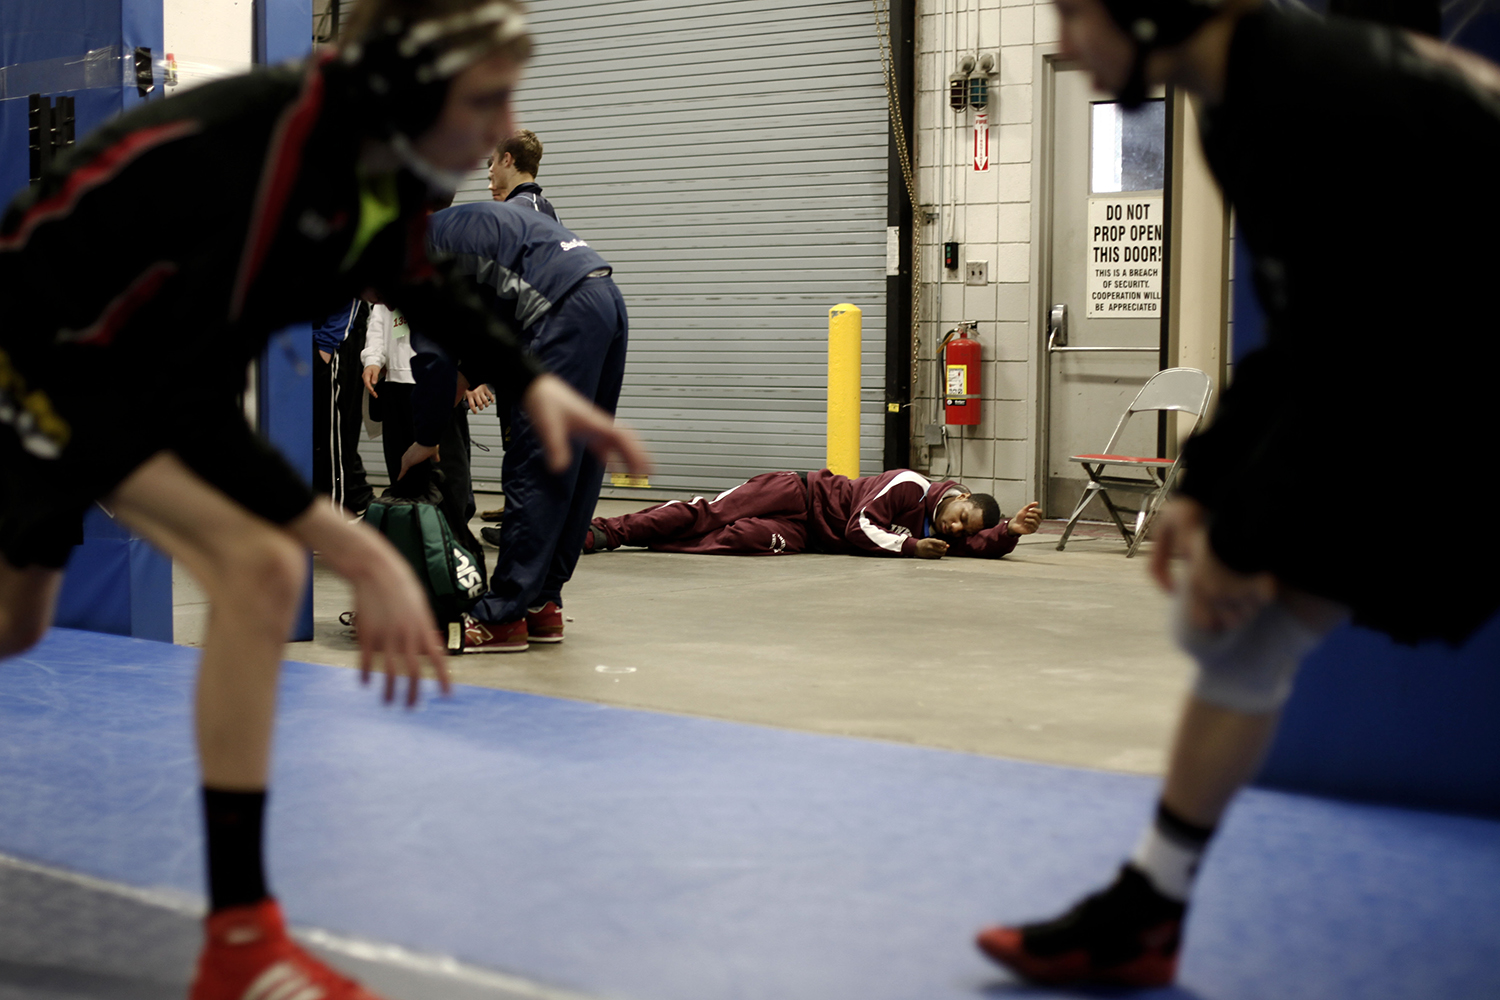 Joseph Chatman from Detroit, Divison 2, 189 pound weight class, center, rests before taking the floor at the state of Michigan Wrestling Championships on Saturday, Mar. 2, 2013 at The Palace of Auburn Hills.  TIM GALLOWAY